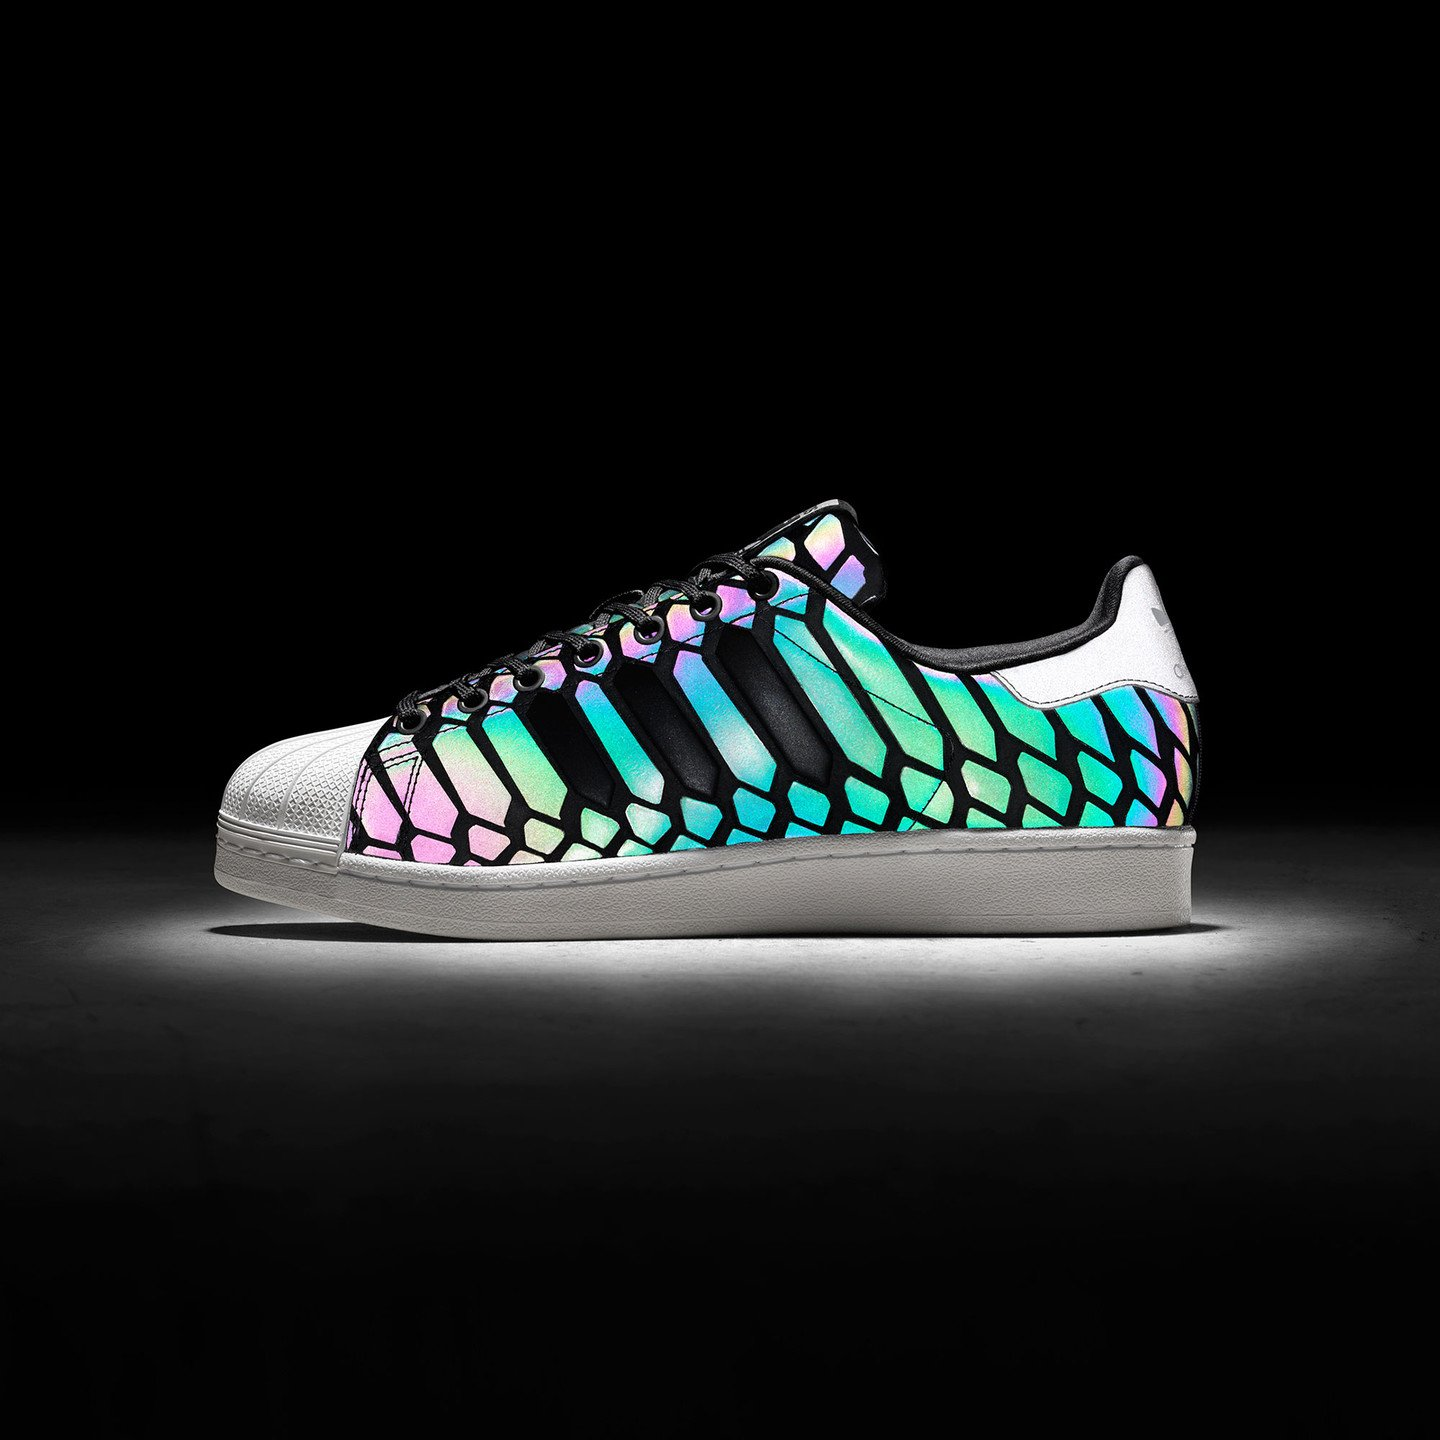 Adidas Superstar Xeno Pack Cblack / Supcol / Ftwwht D69366-40